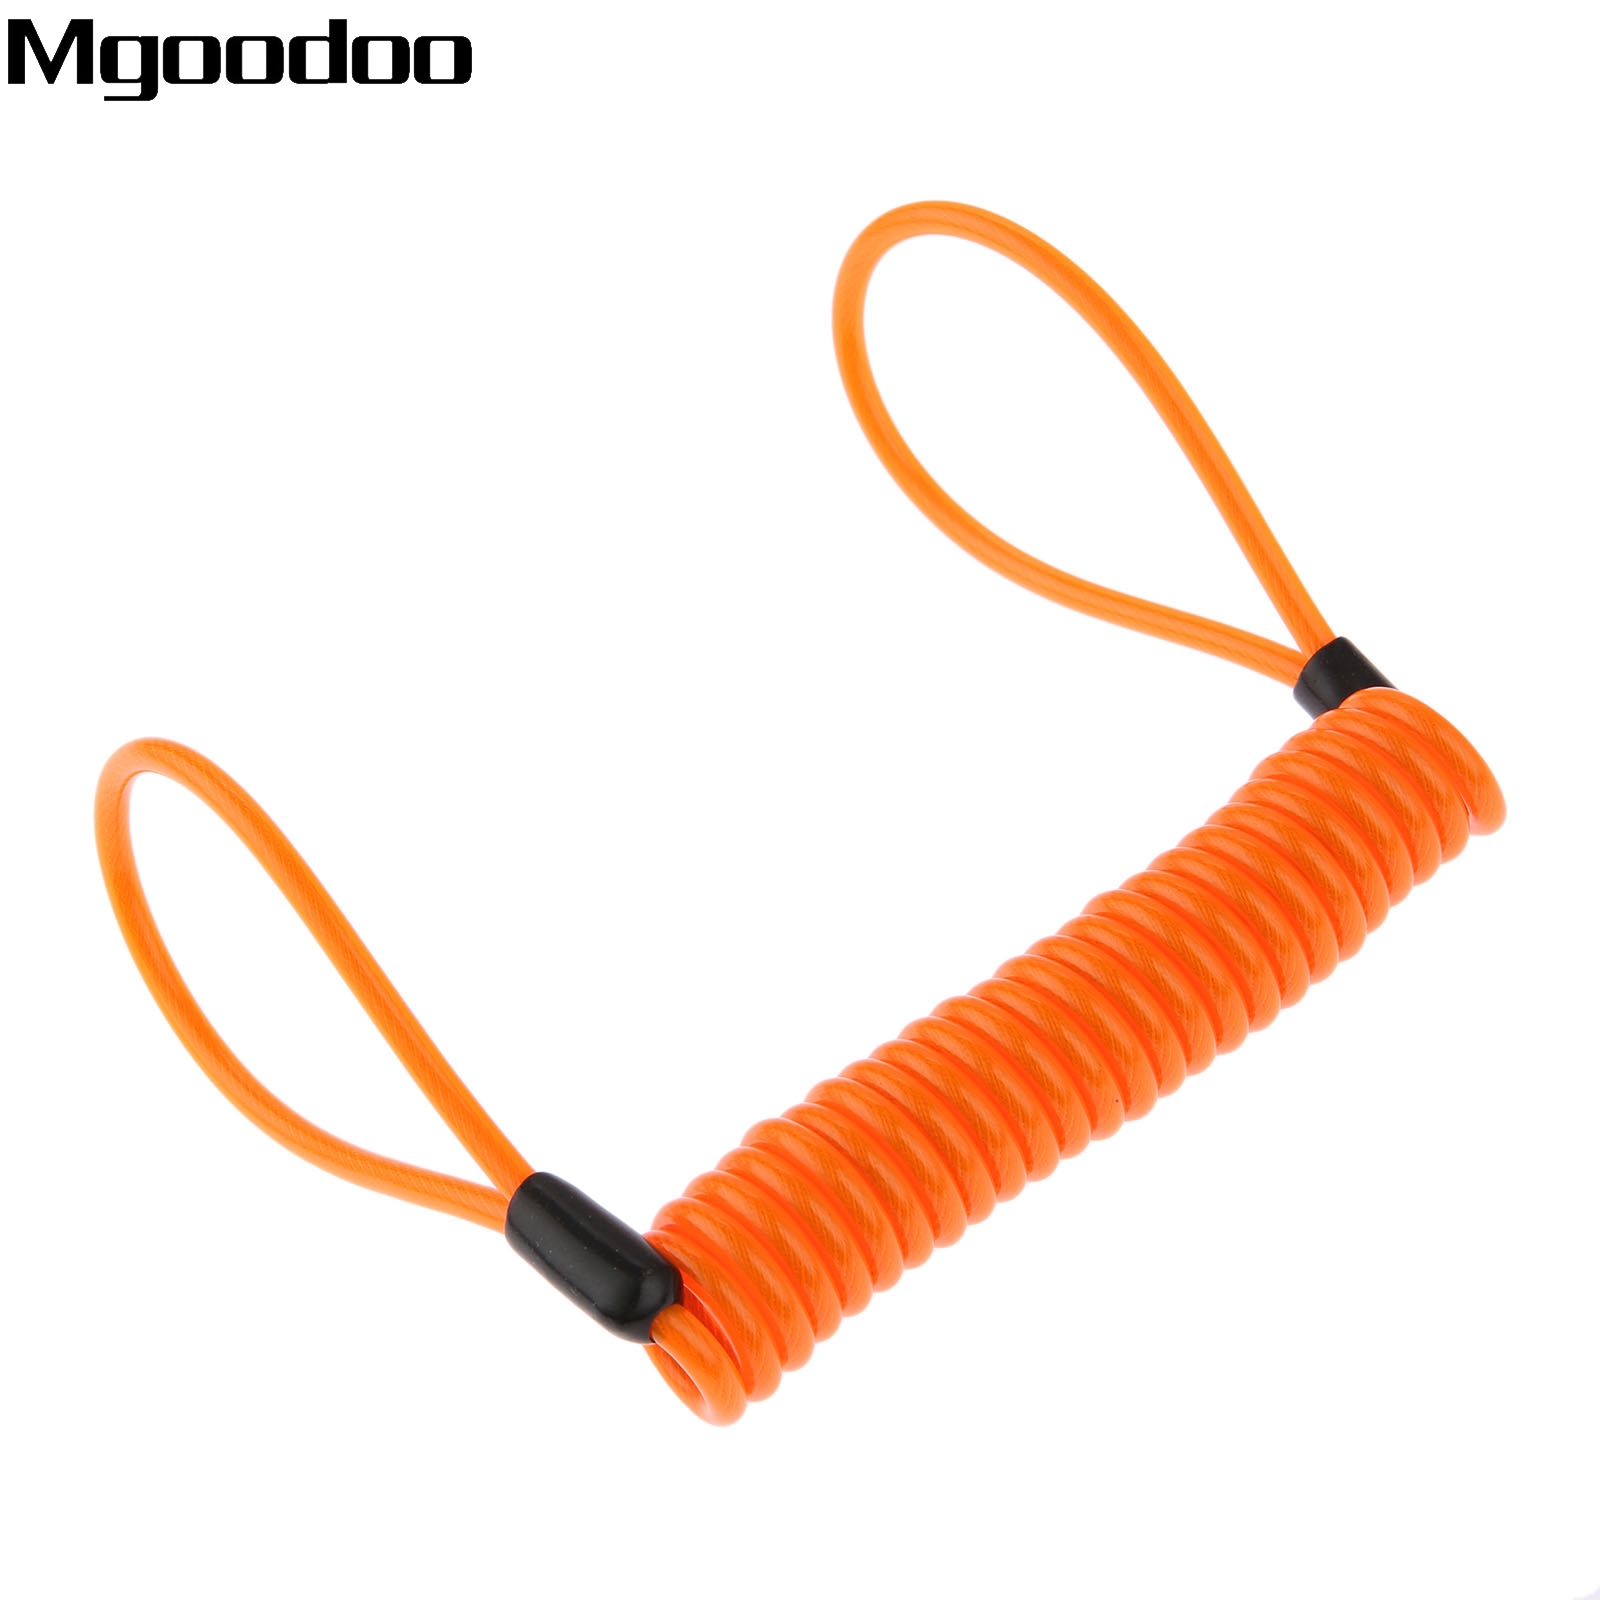 1.5m Cable Bicycle Lock Rope Helmet Wire Anti-theft Protect Rope Motorcycle Motorbike Disc Lock Security Reminder Lanyard Spring